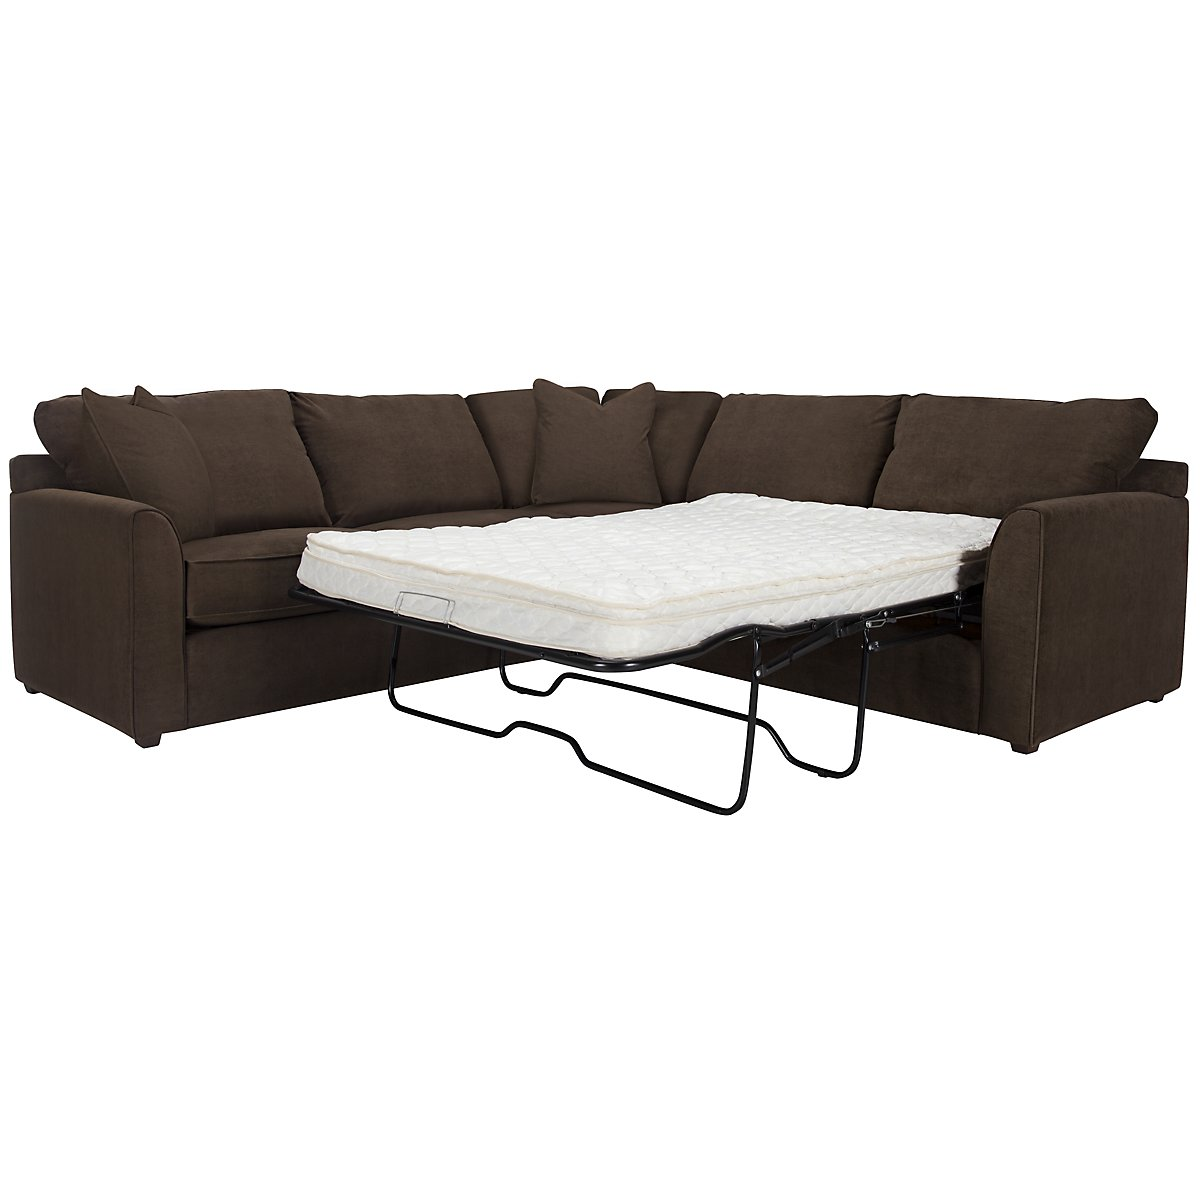 Express3 Dark Brown Microfiber Two-Arm Right Innerspring Sleeper Sectional